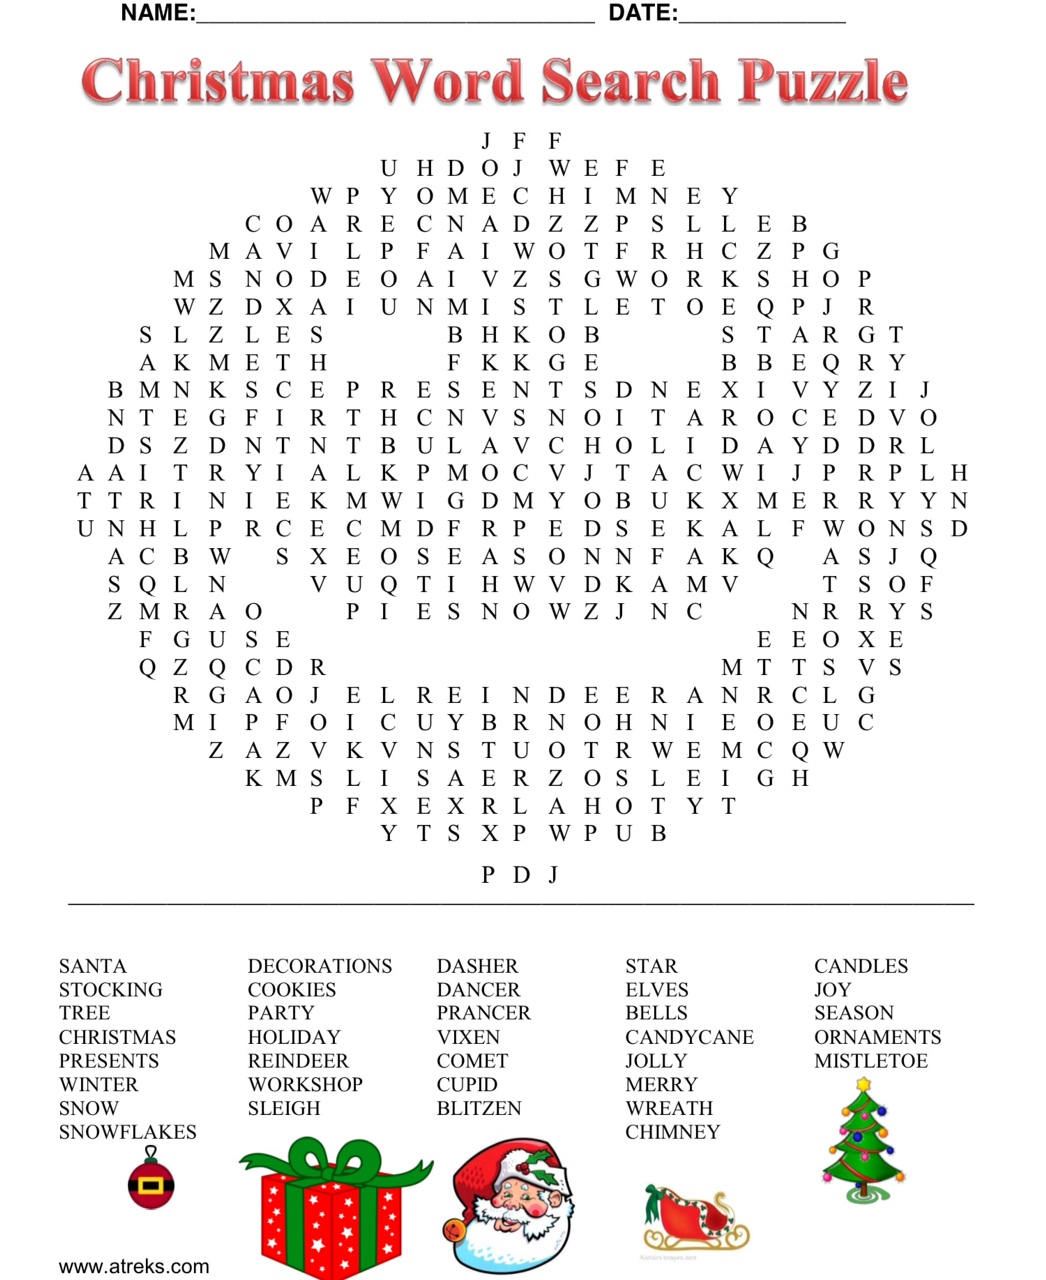 Christmas WordSearch Puzzle